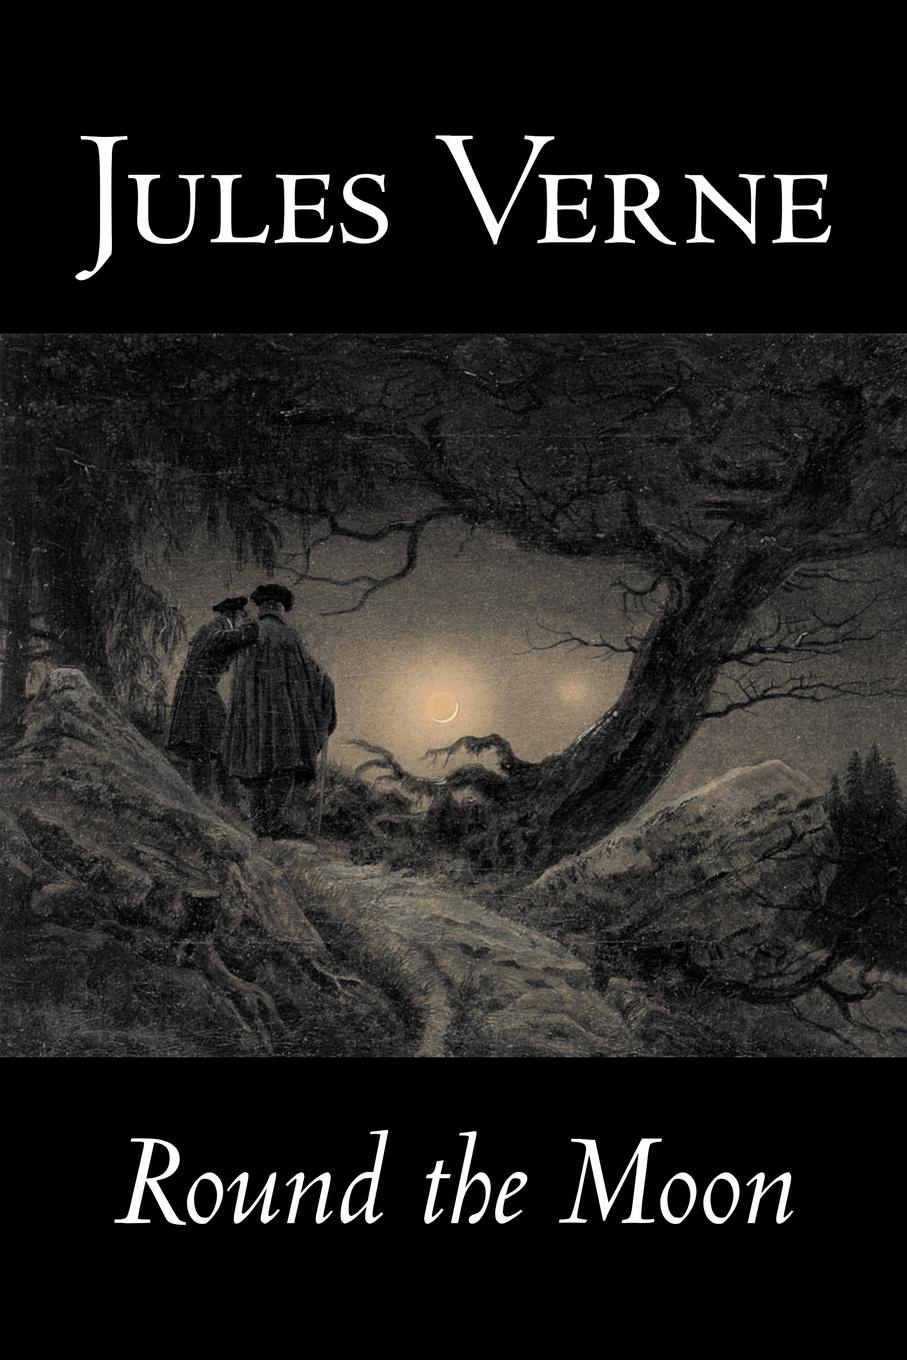 Jules Verne Round the Moon by Jules Verne, Fiction, Fantasy & Magic